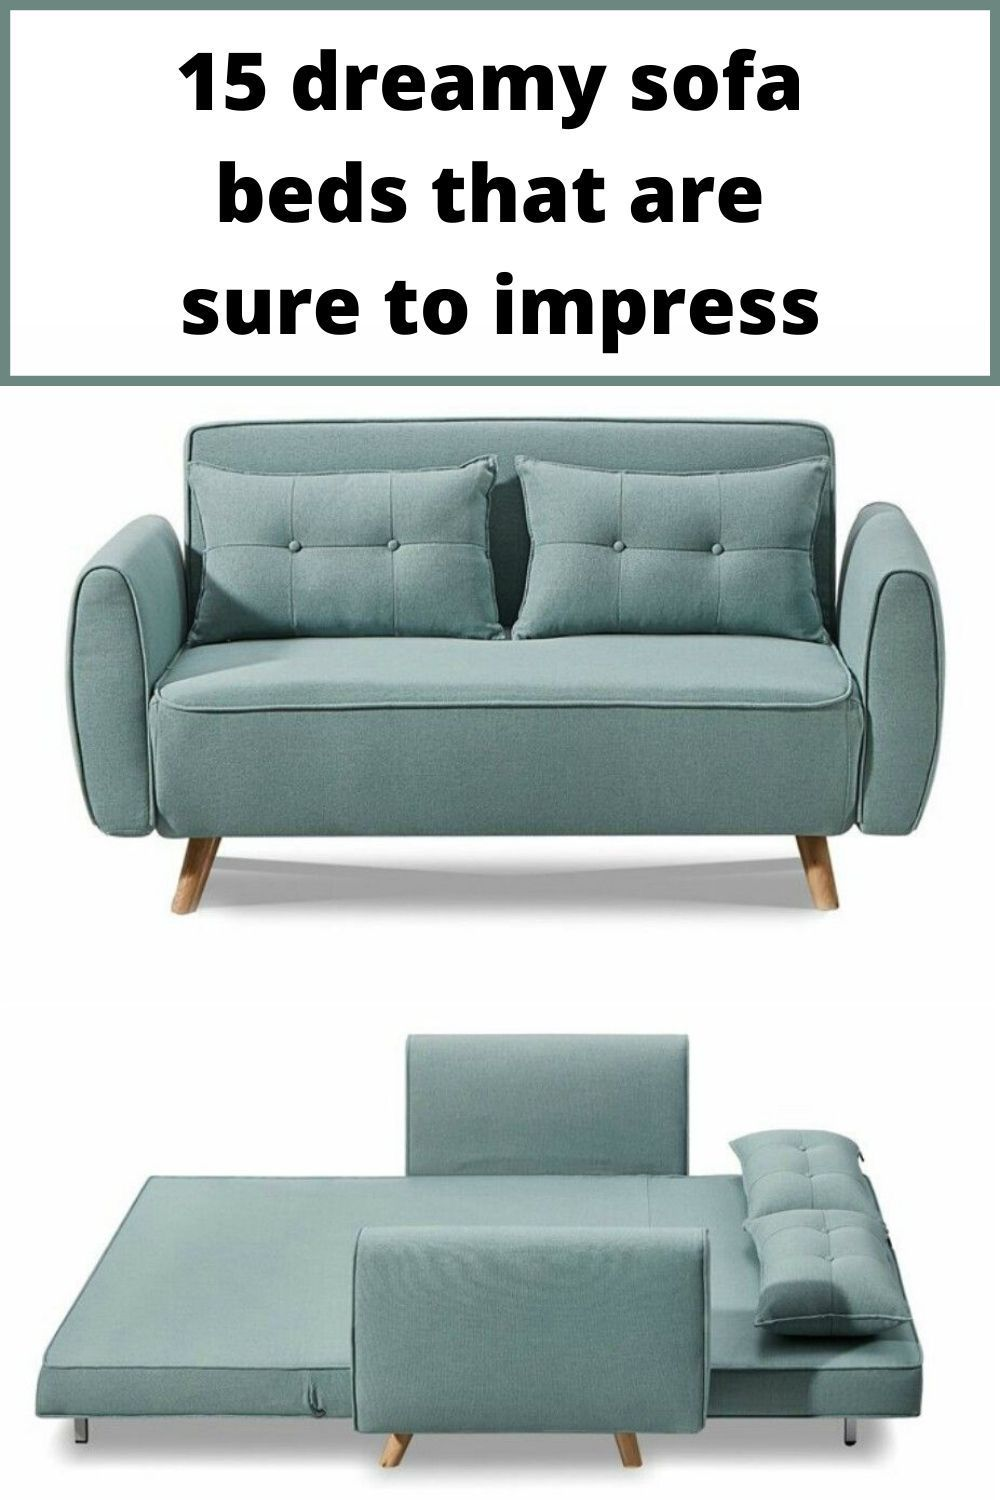 15 dreamy sofa beds that are sure to impress